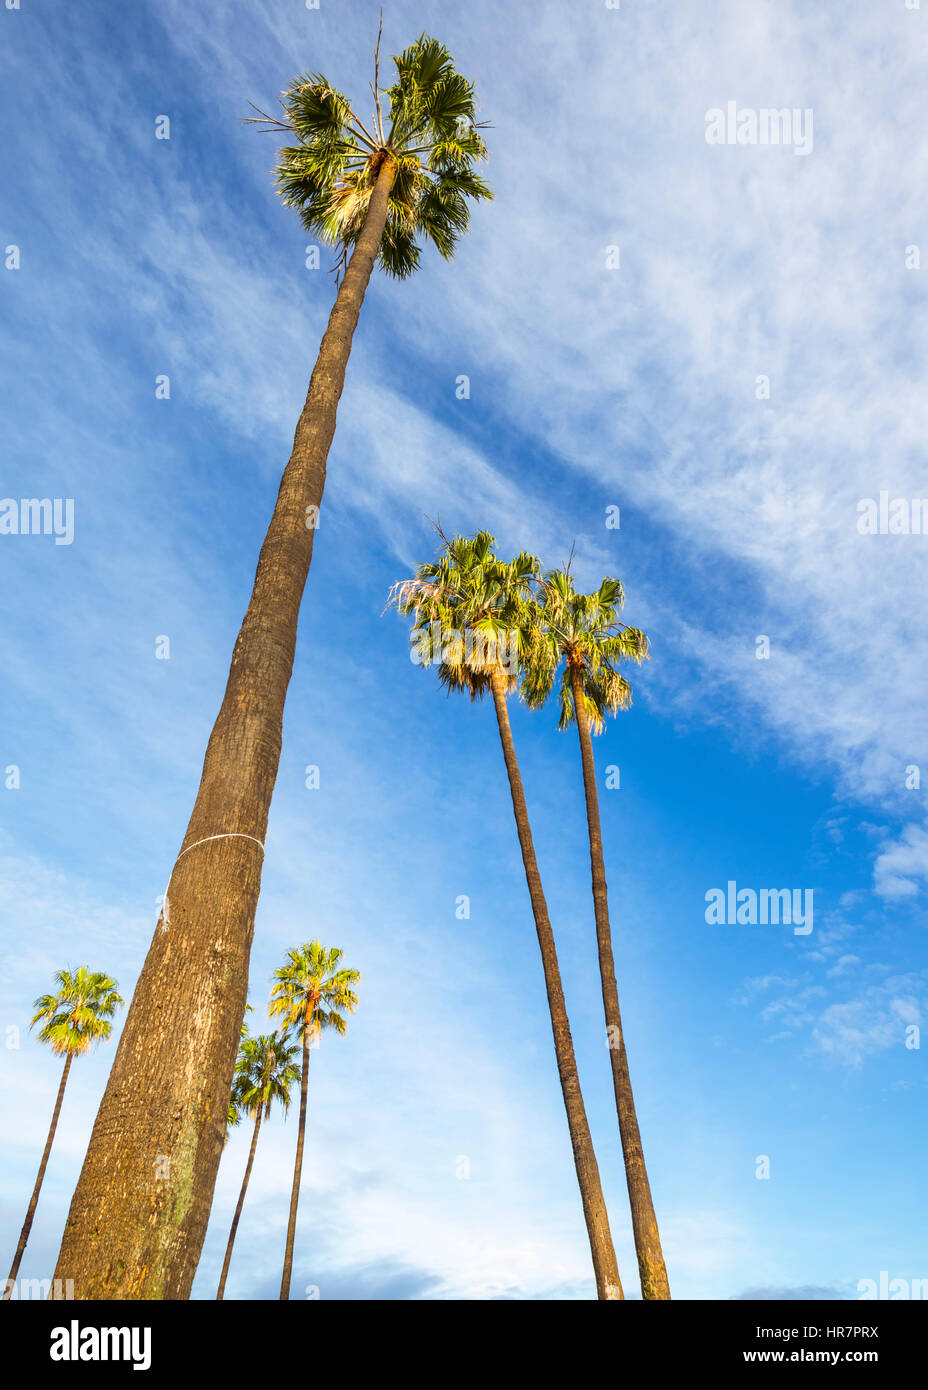 Palm trees against a cloudy sky. California, USA. - Stock Image